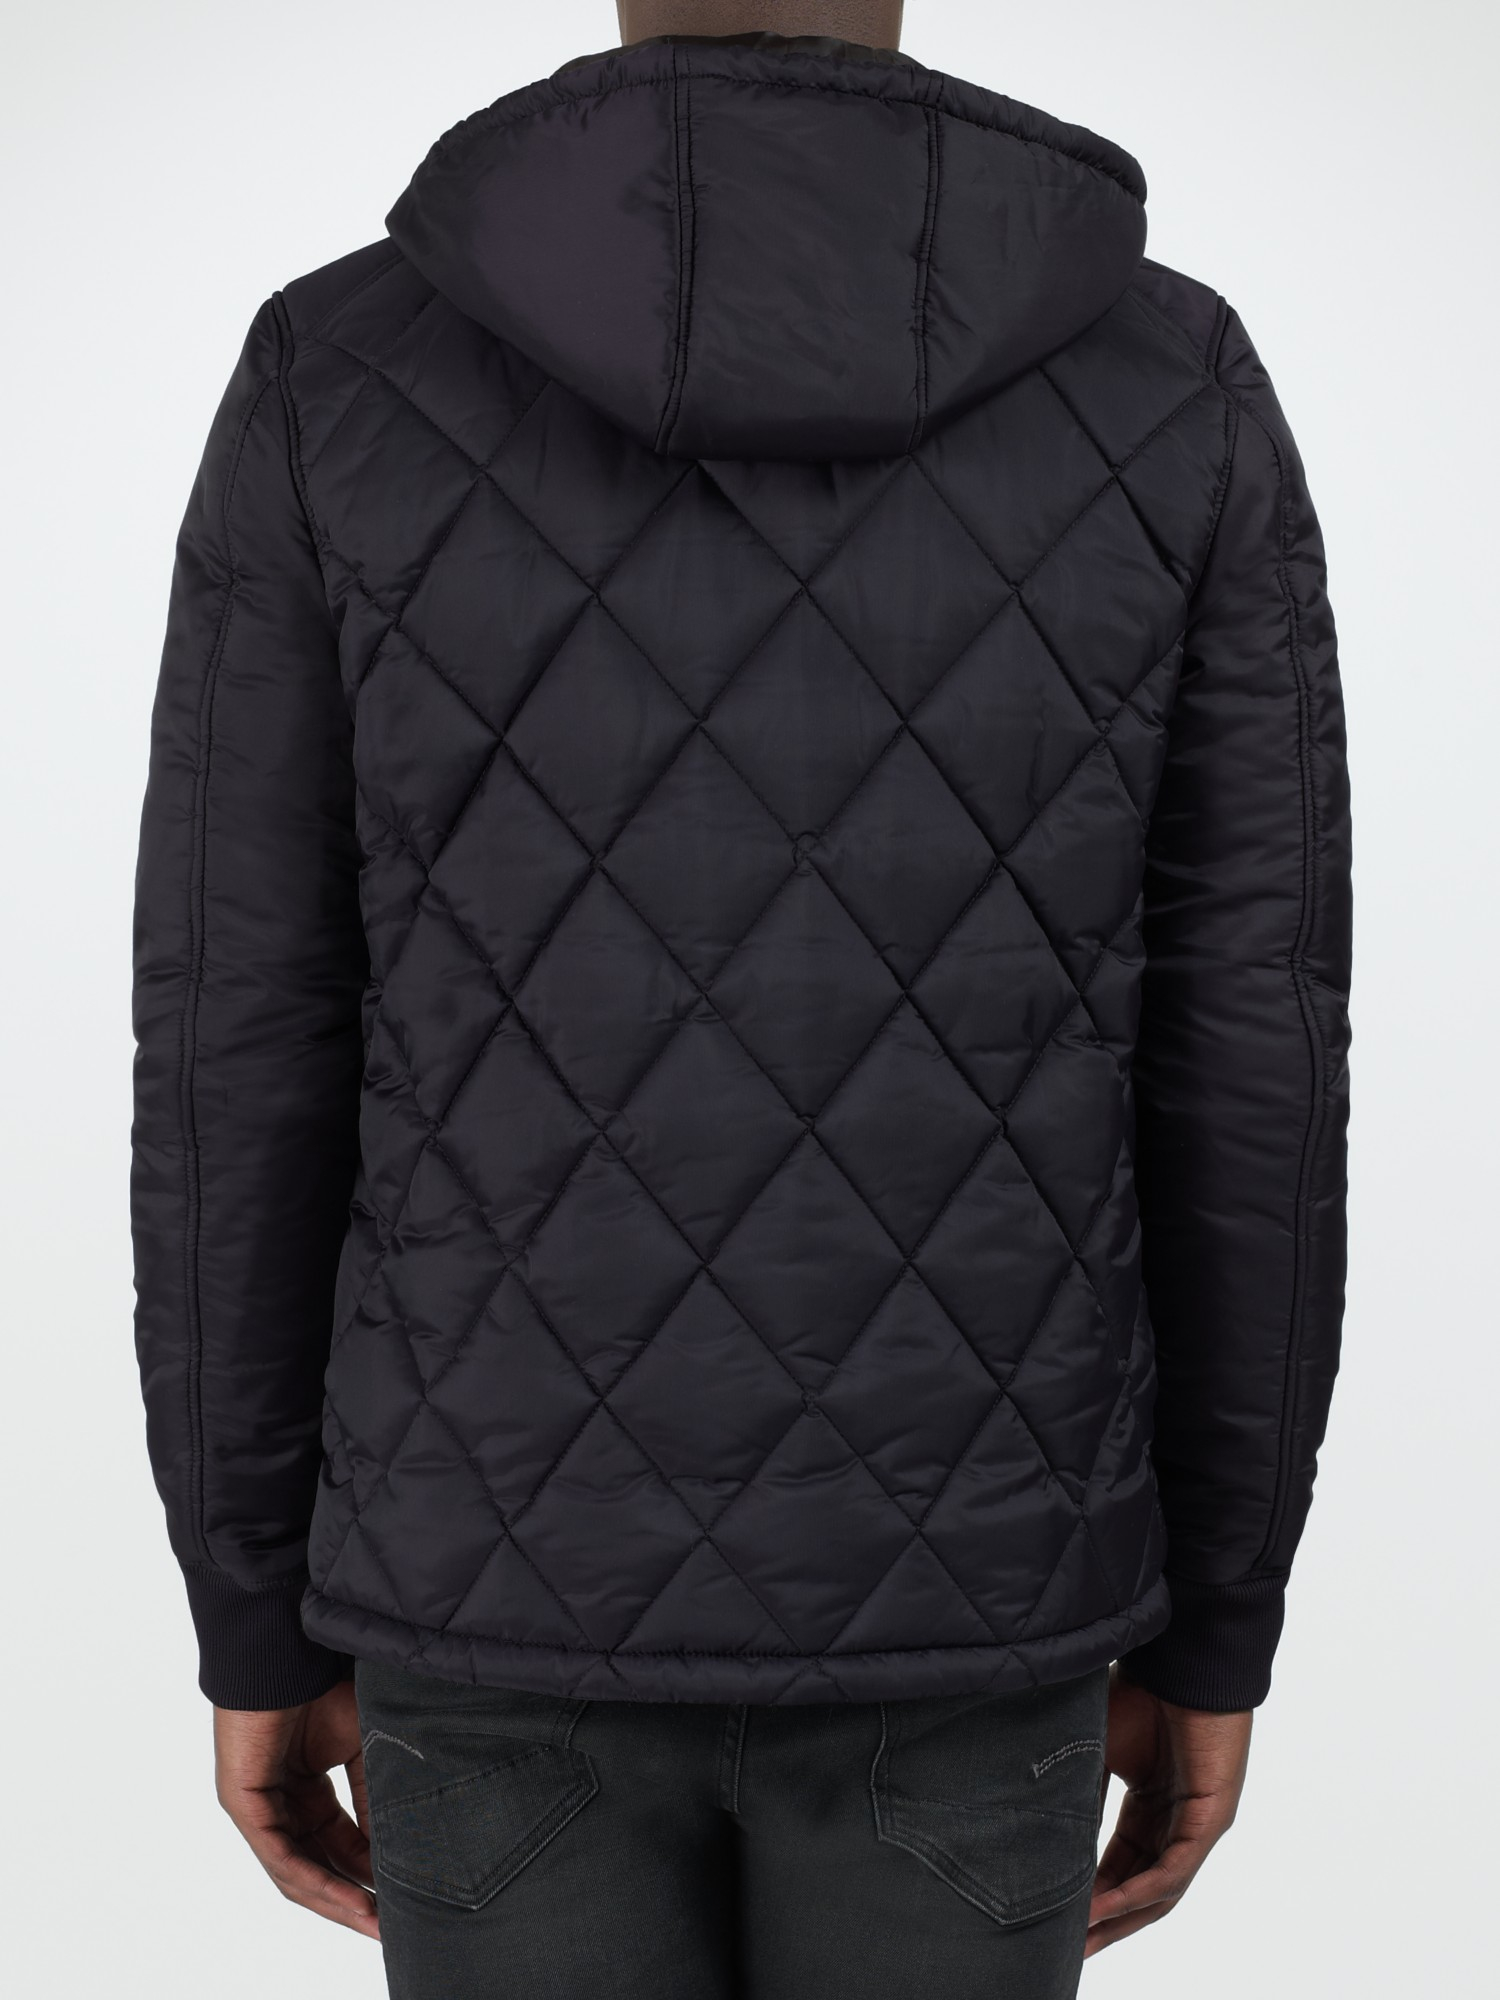 246609b04de G-Star RAW Fibrick Hooded Jacket in Black for Men - Lyst